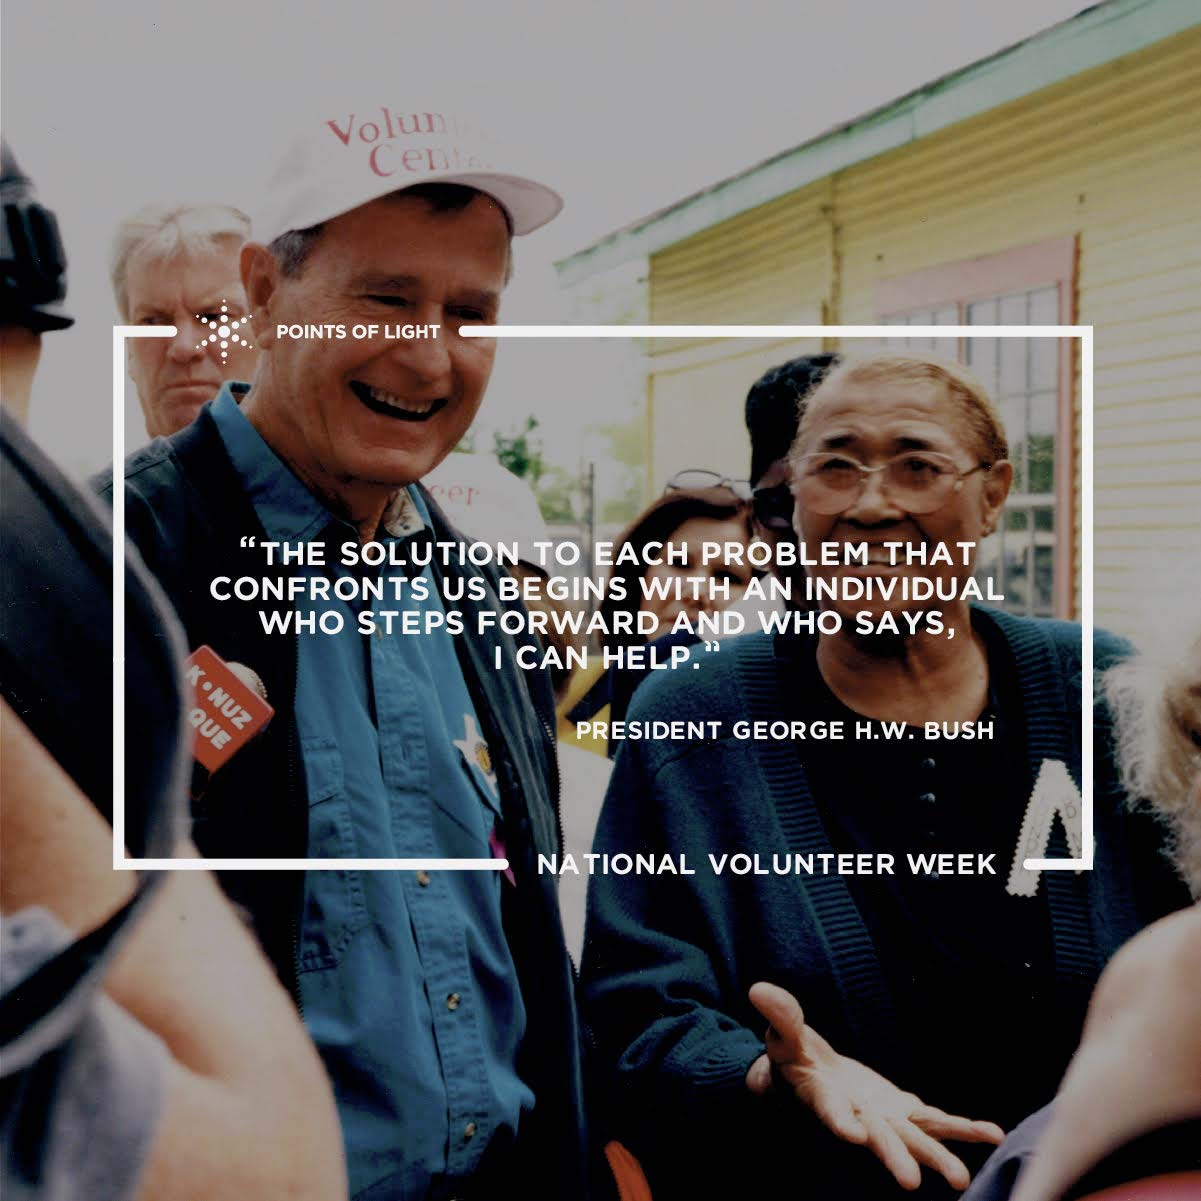 """The solution to each problem that confronts us begins with an individual who steps forward and who says, I can help."" -President George H.W. Bush"